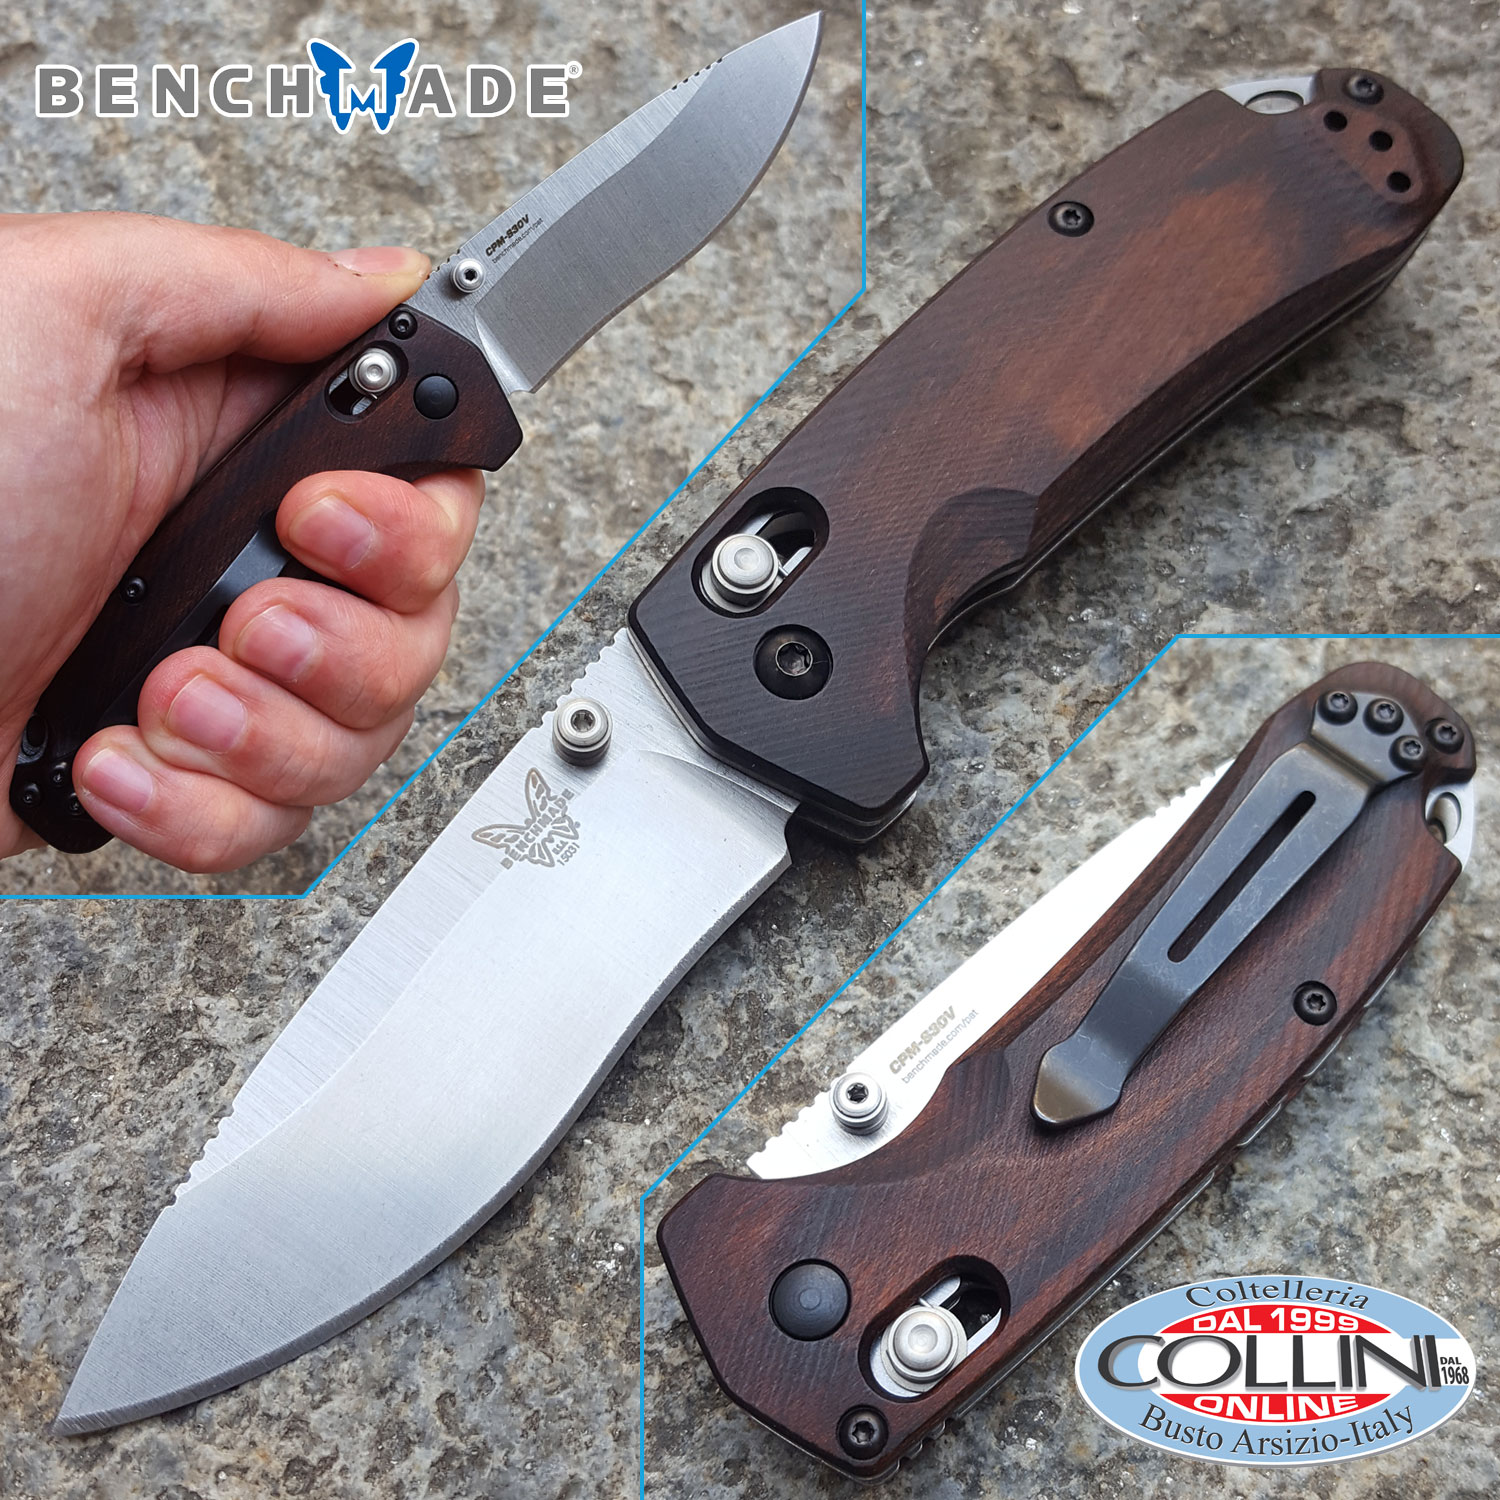 Benchmade North Fork Axis 15031 2 Folding Knife